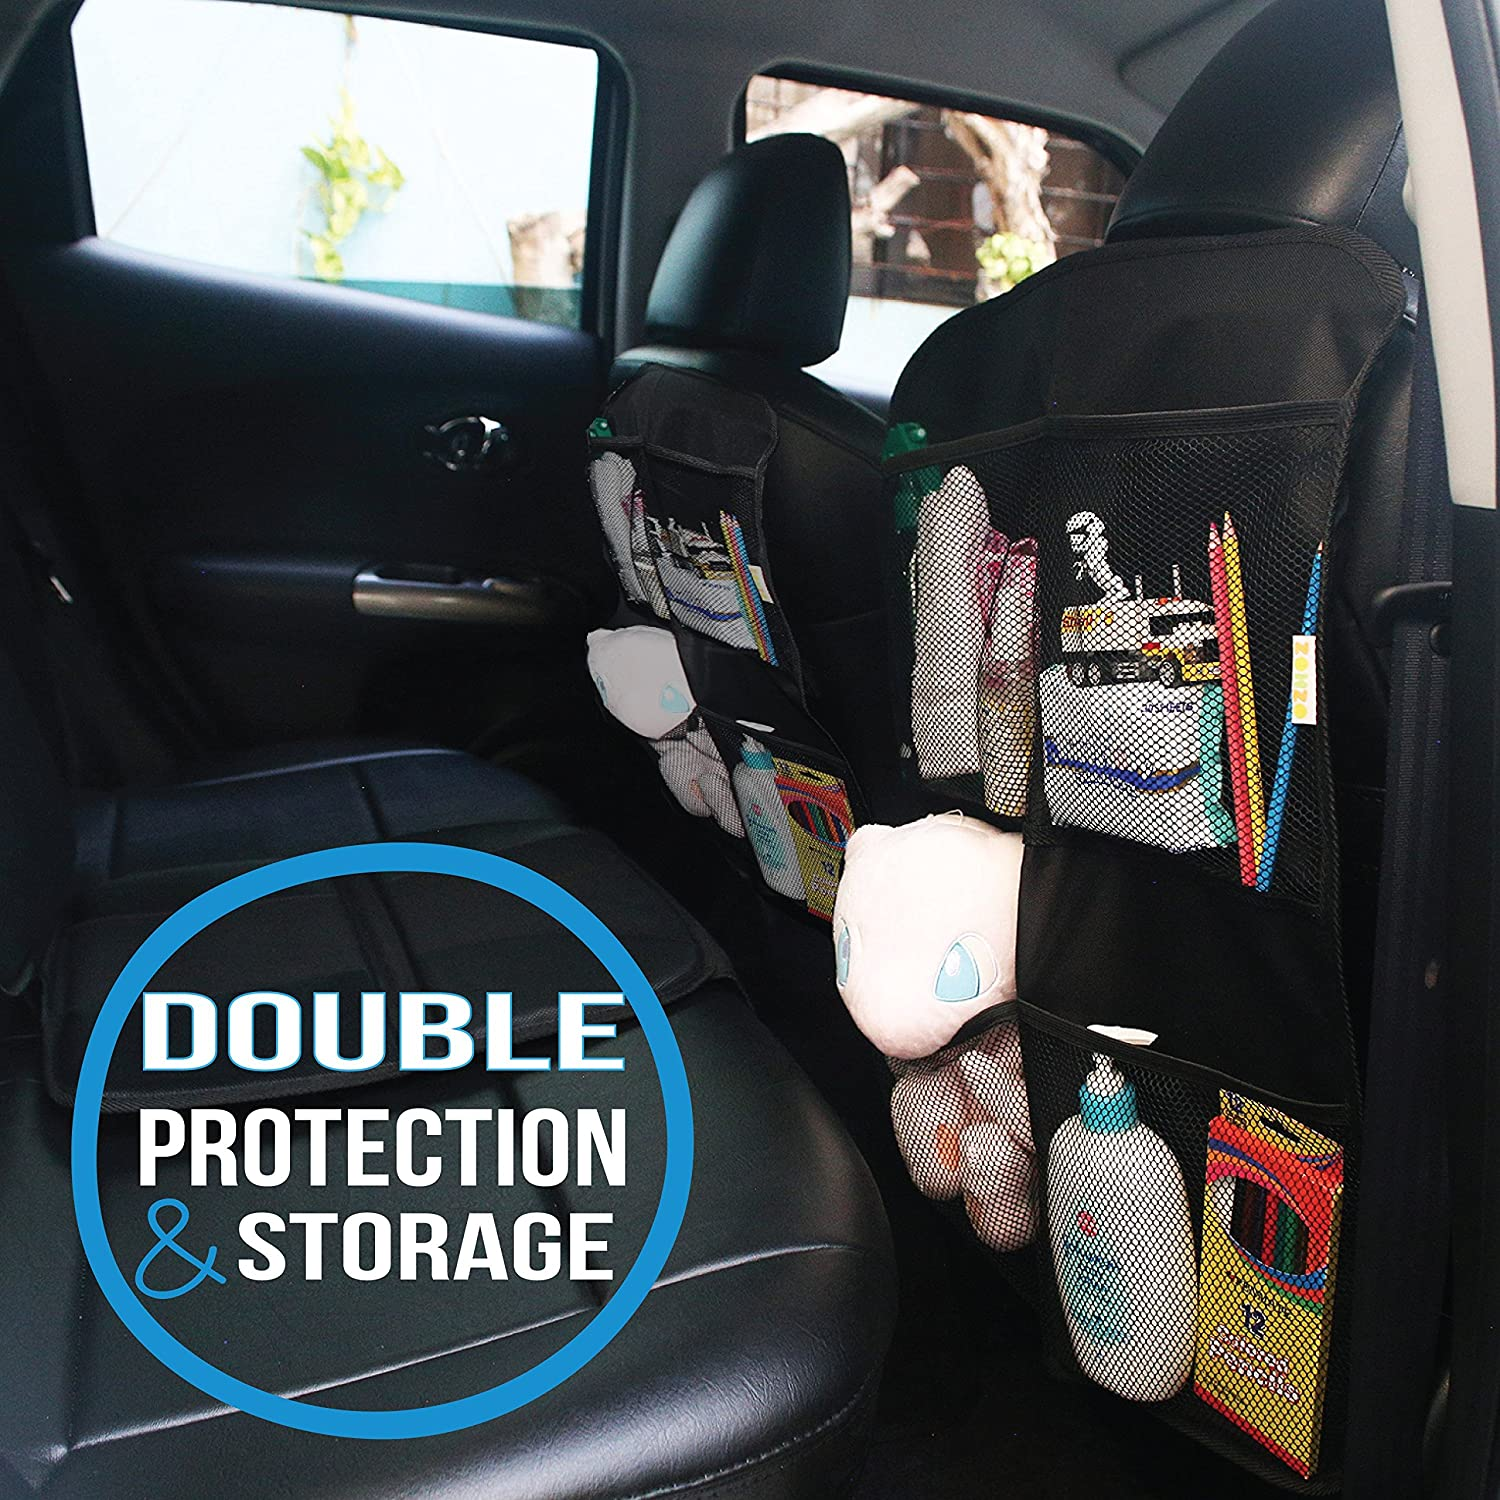 Kick Mats Back Seat Protector by Zohzo 2 Pack Luxury Seat Covers for The Back of Your Front Seat Backseat Child Kick Guard Protector Cover